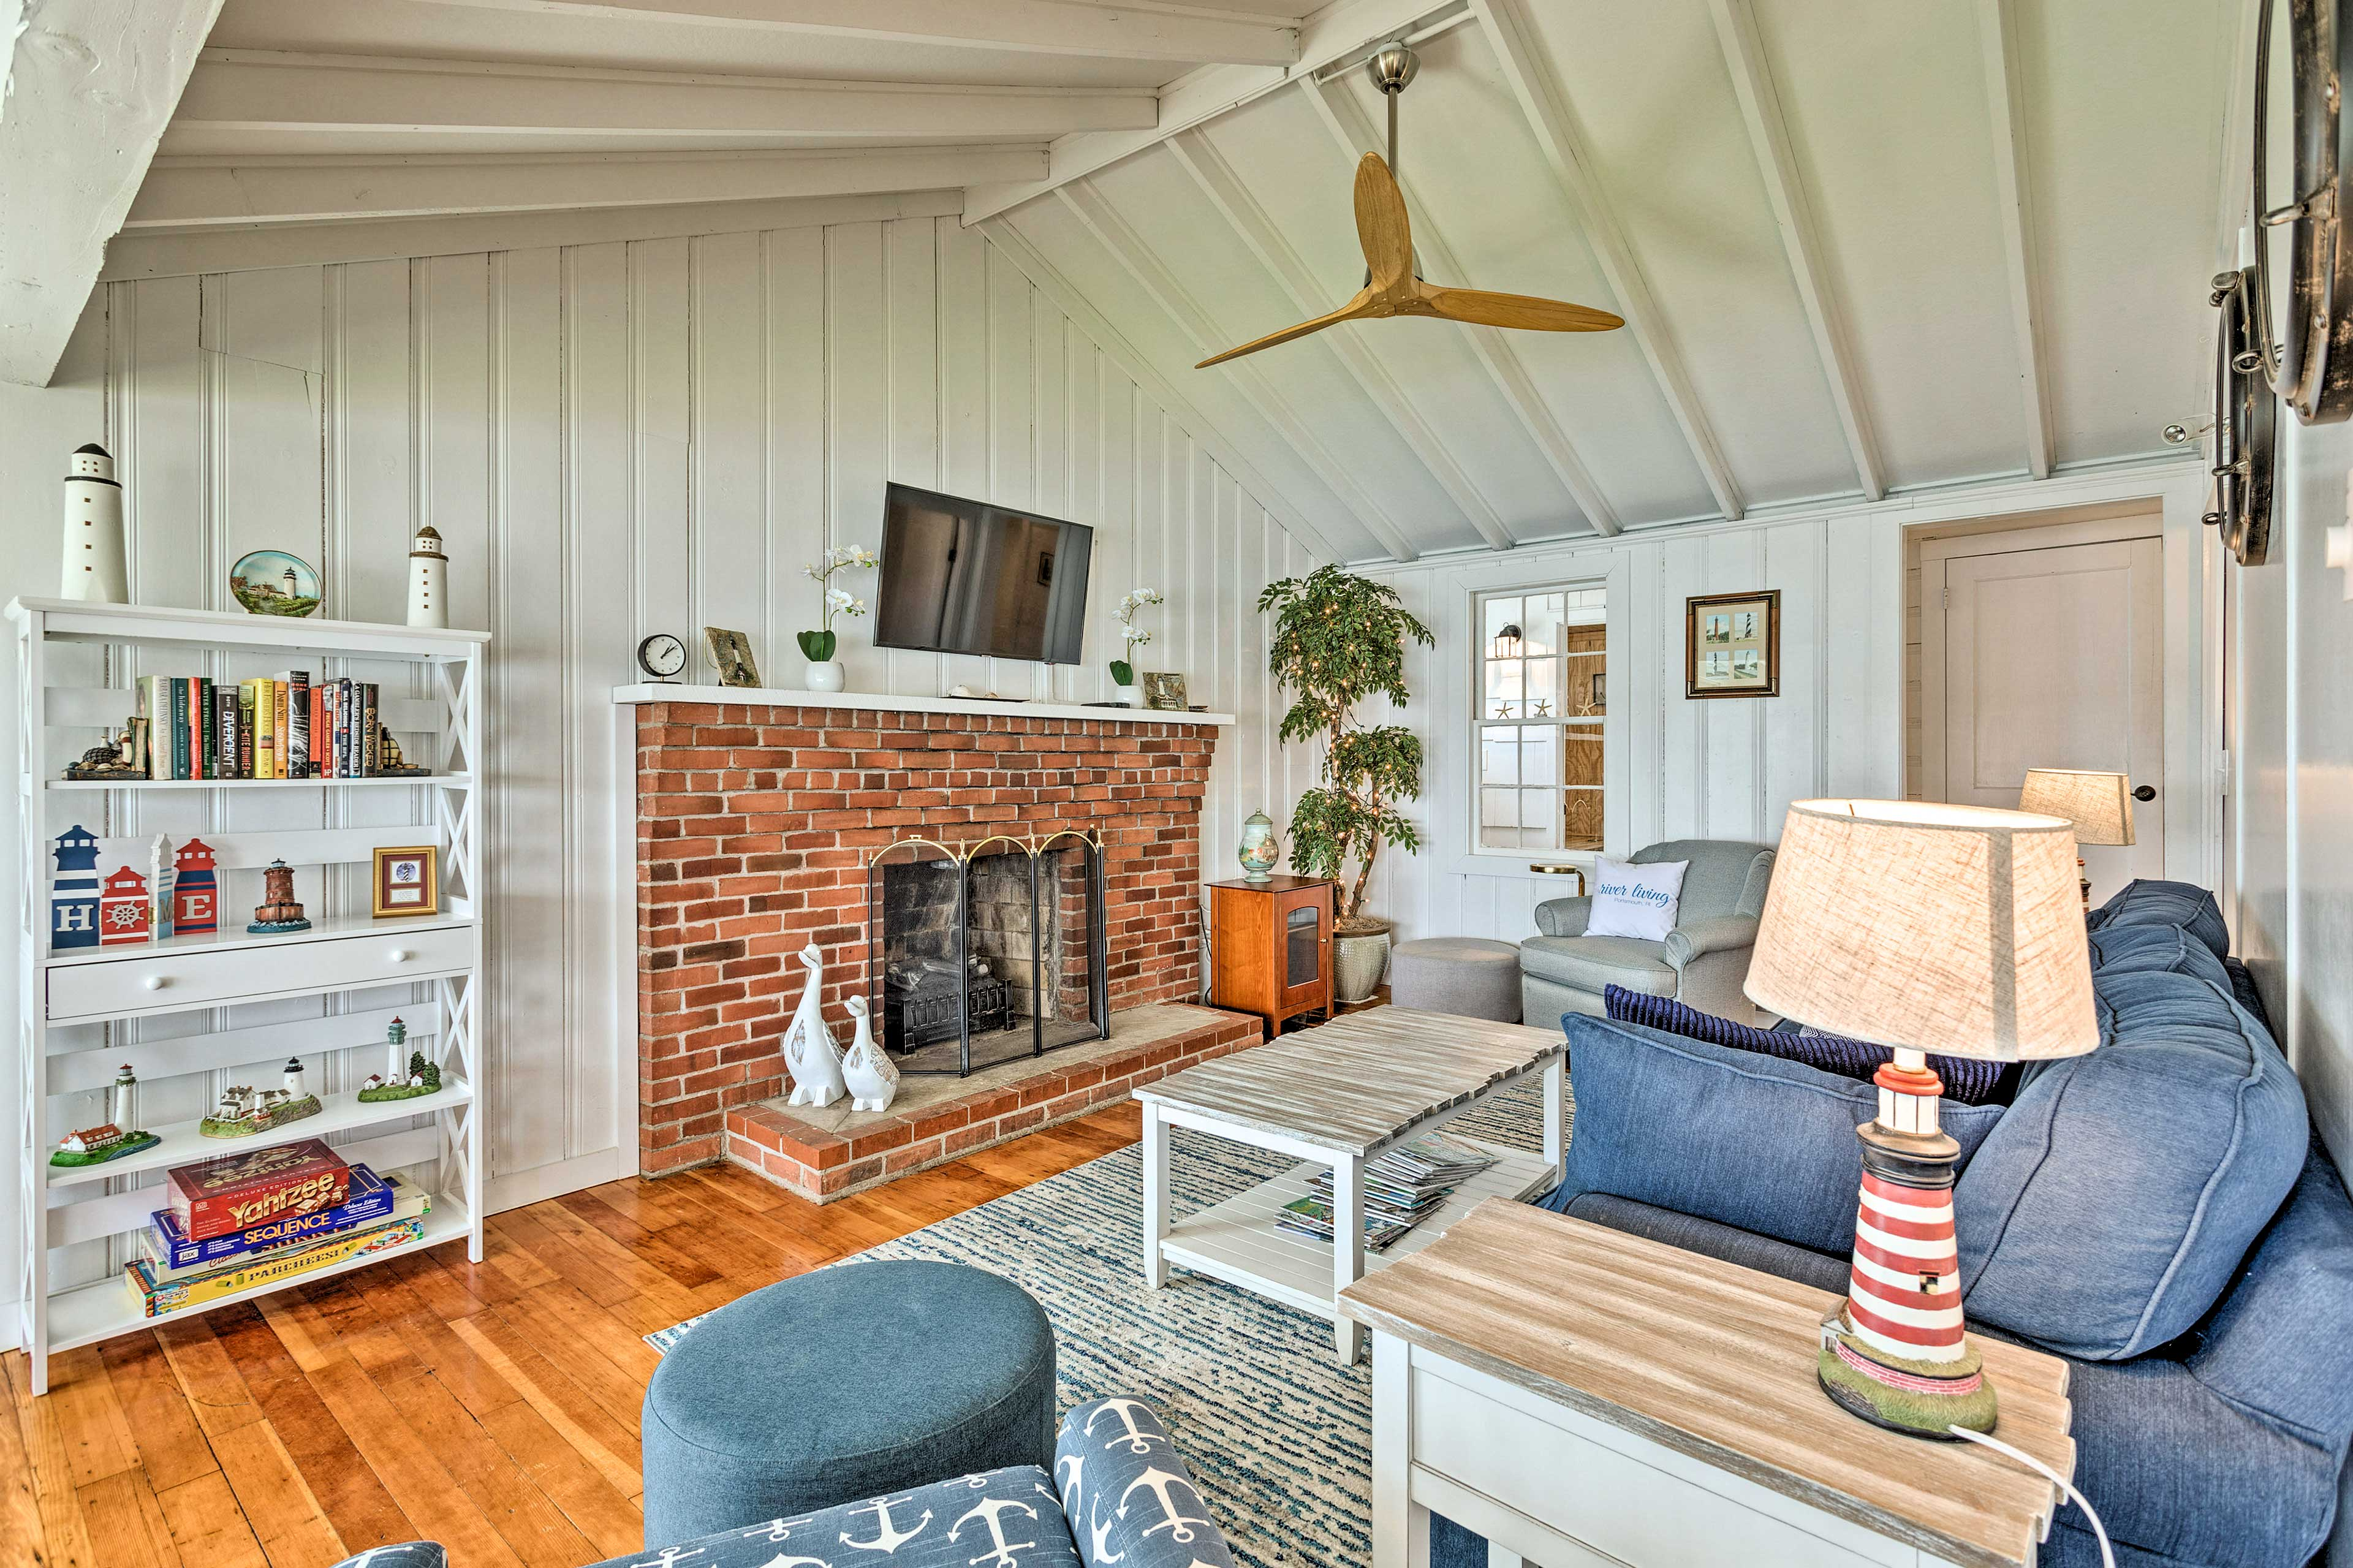 Portsmouth Vacation Rental   2BR   1BA   900 Sq Ft   1 Story